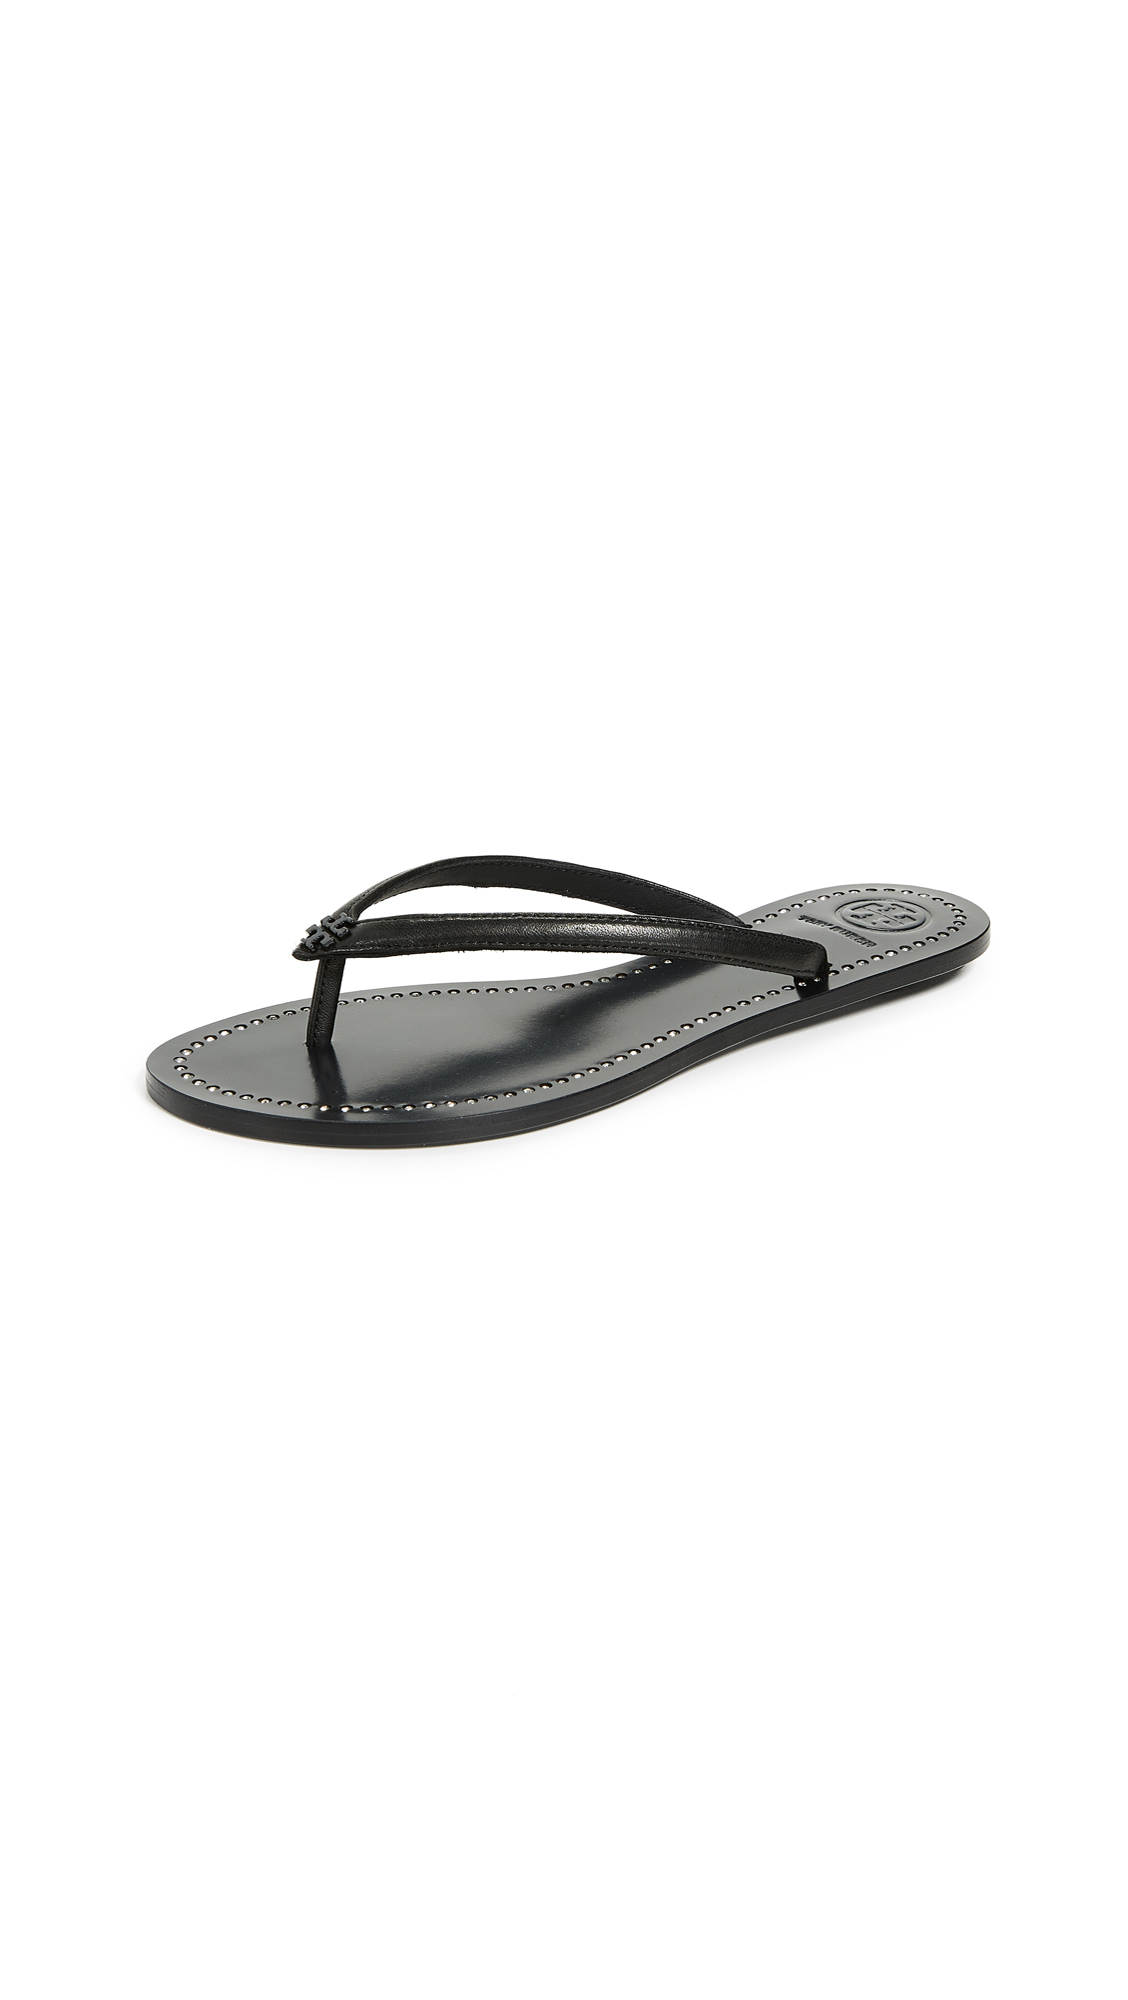 Tory Burch Liana Thong Sandals - Perfect Black